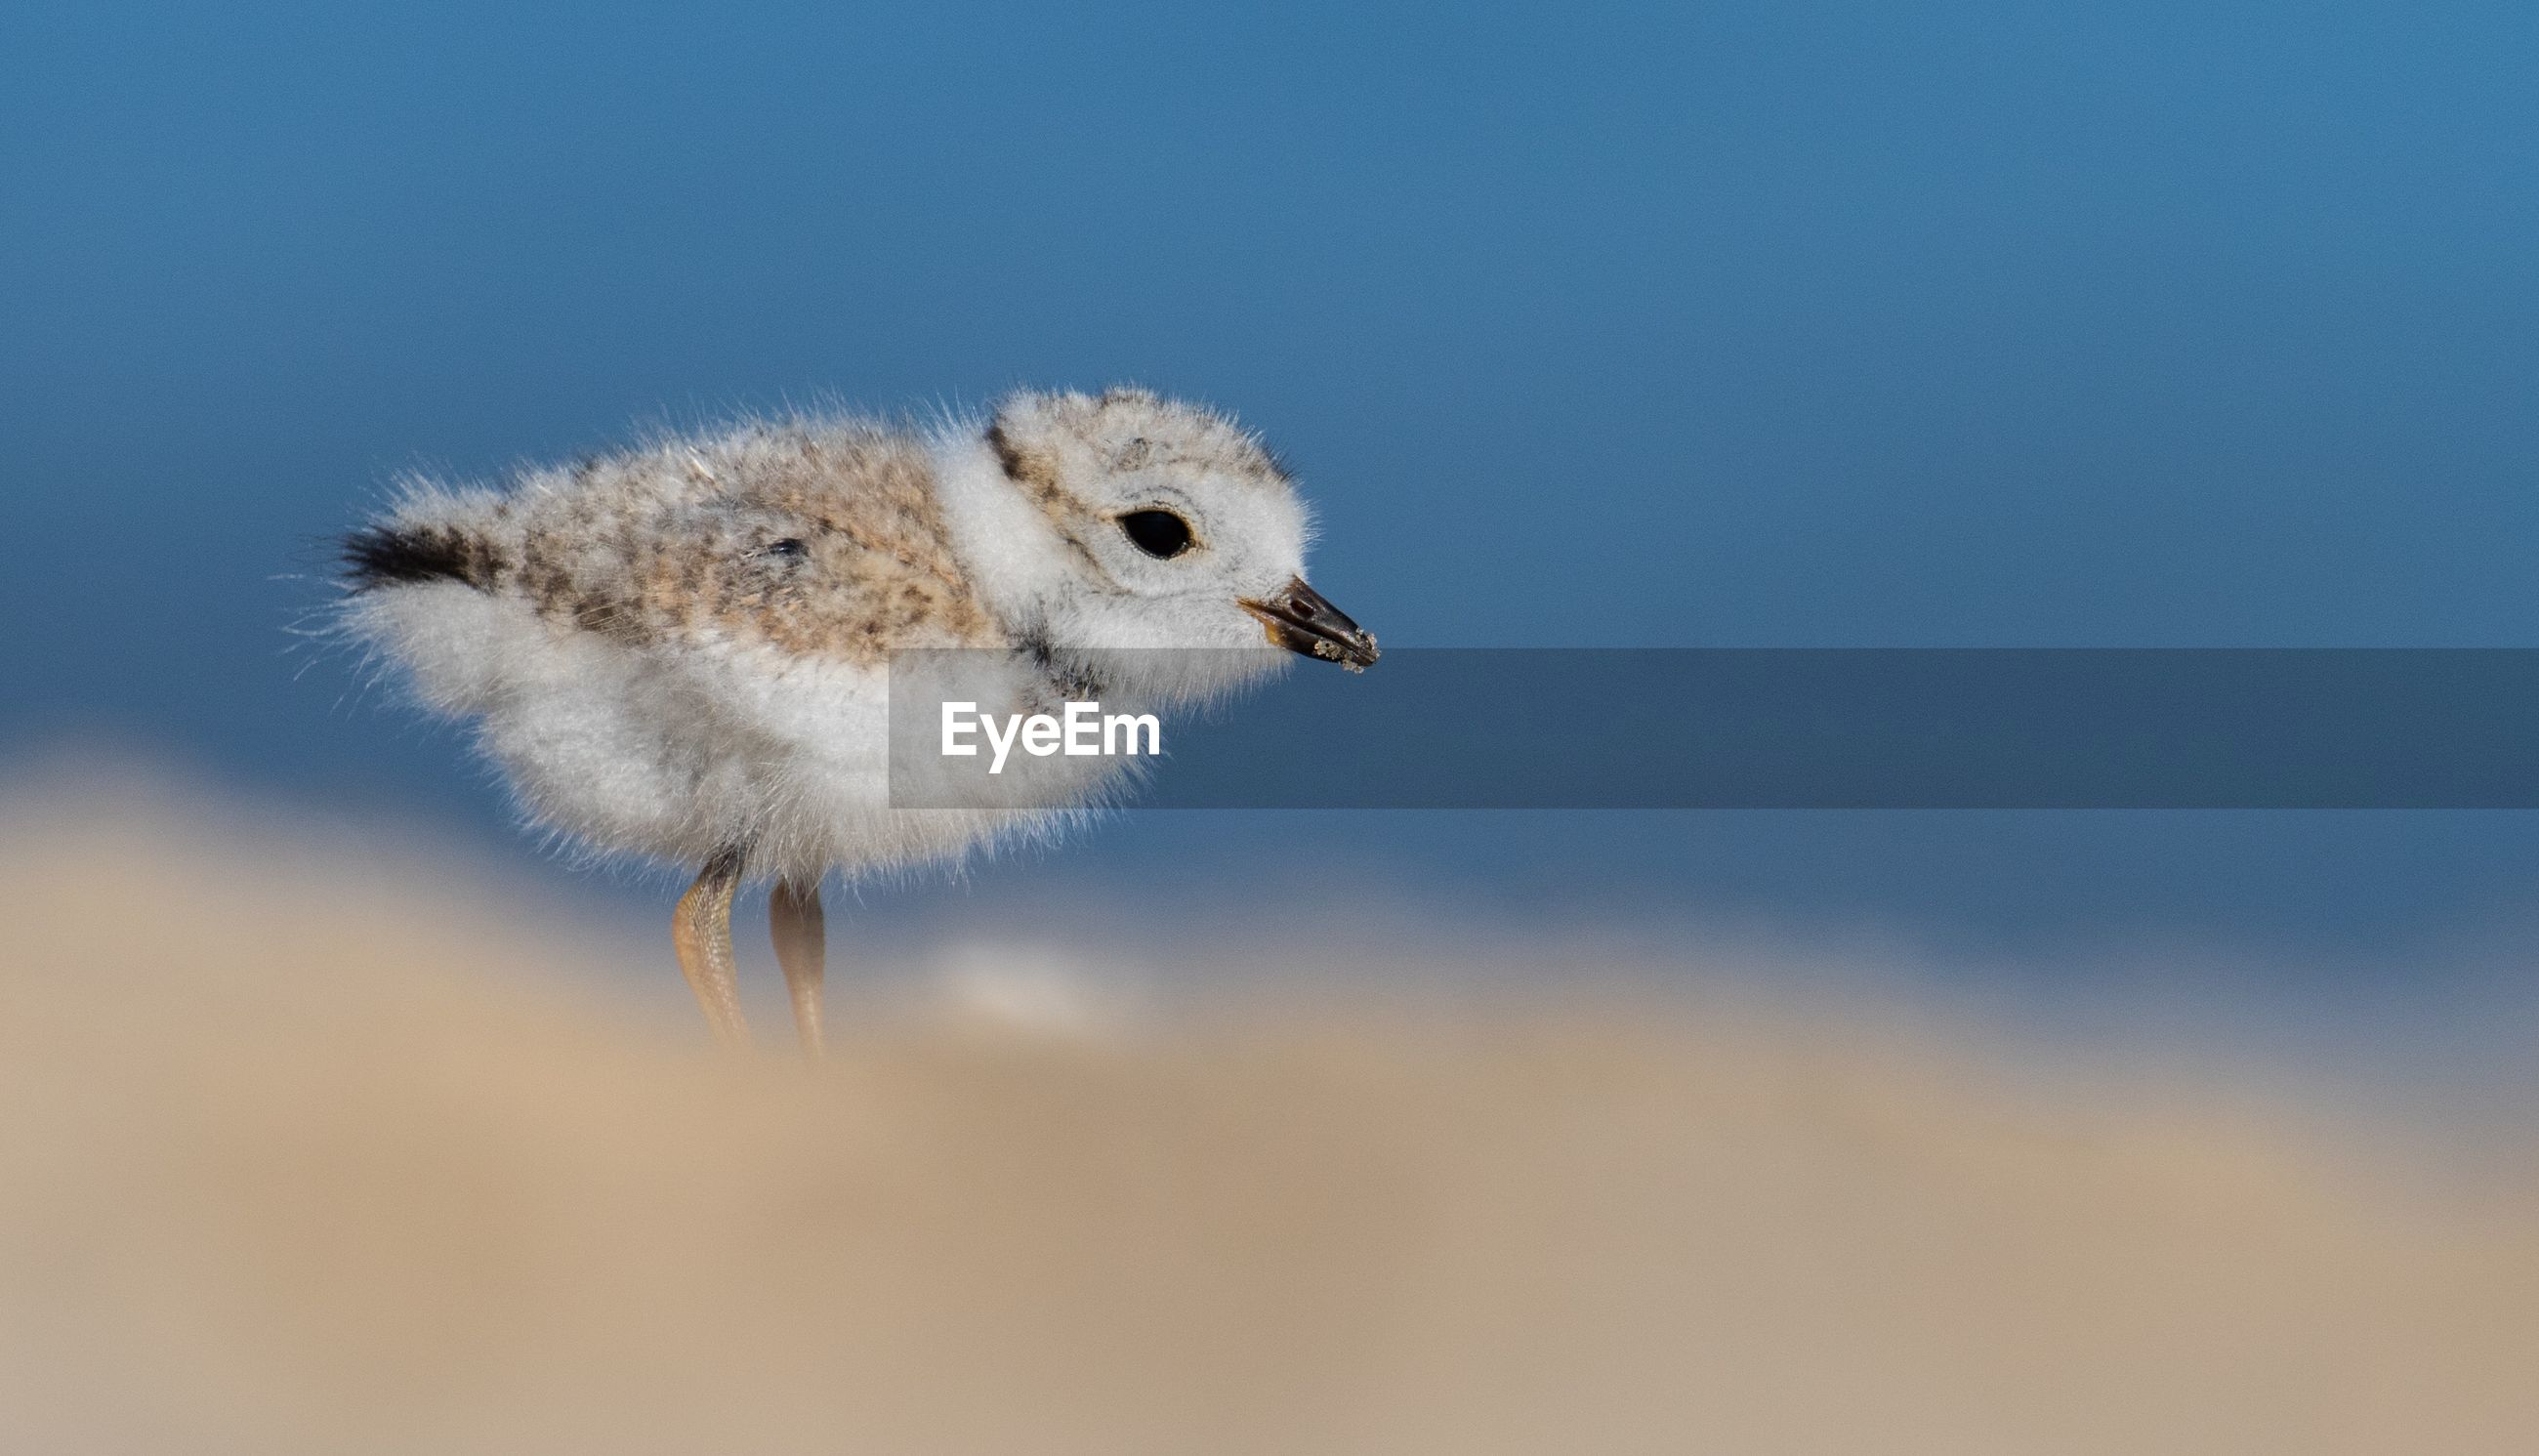 Close-up of young bird against sky